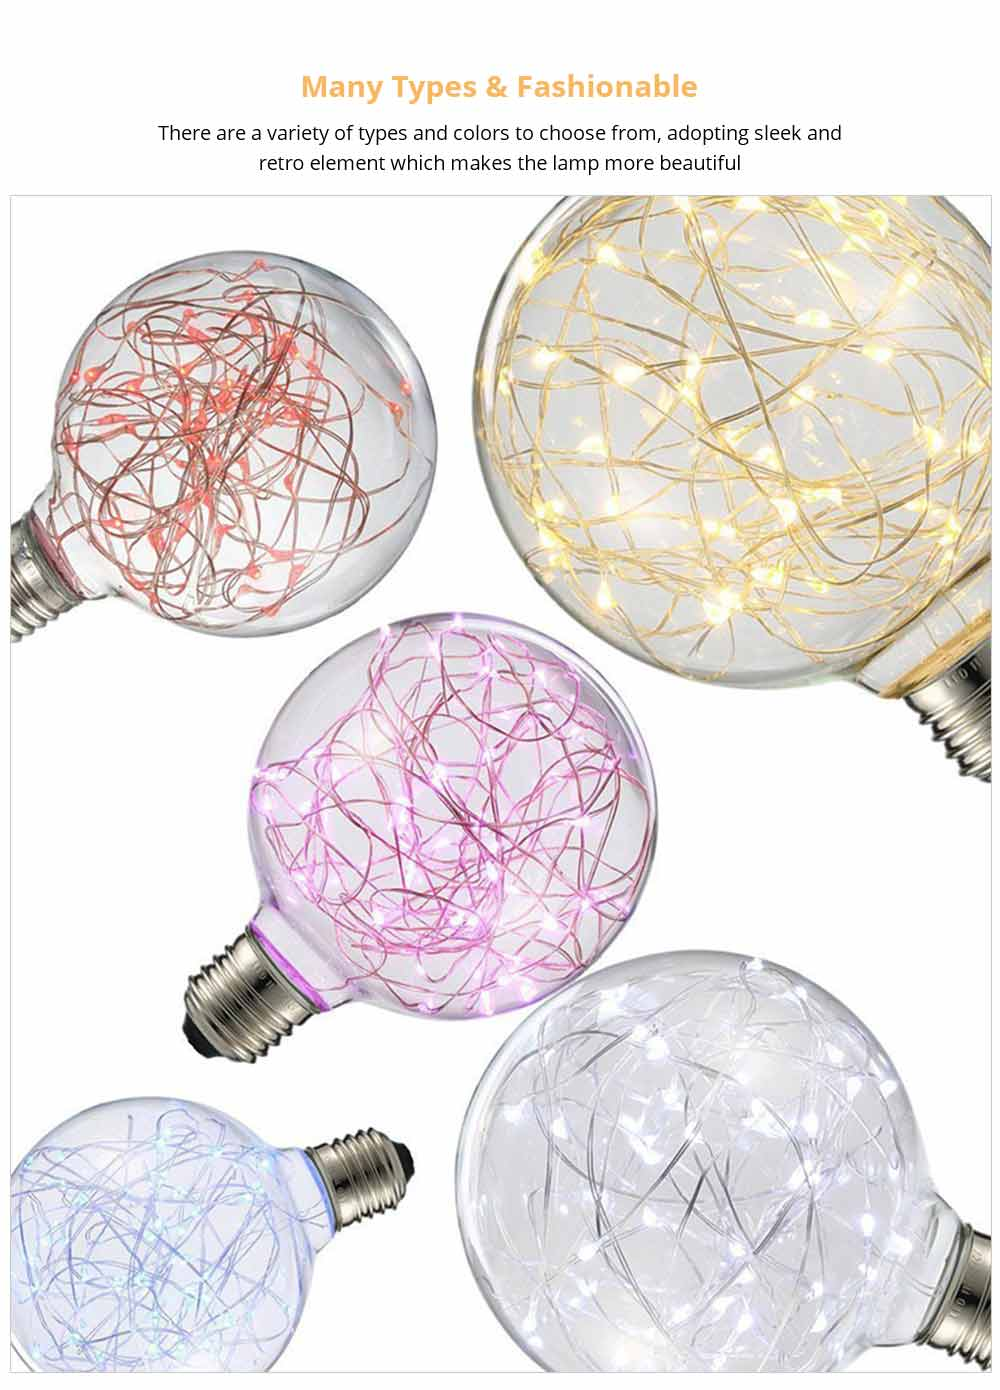 Copper Wire Lamp LED Decorative Lighting, Glass Lamp, Vintage Lamp, Copper Wire Led Lights 12